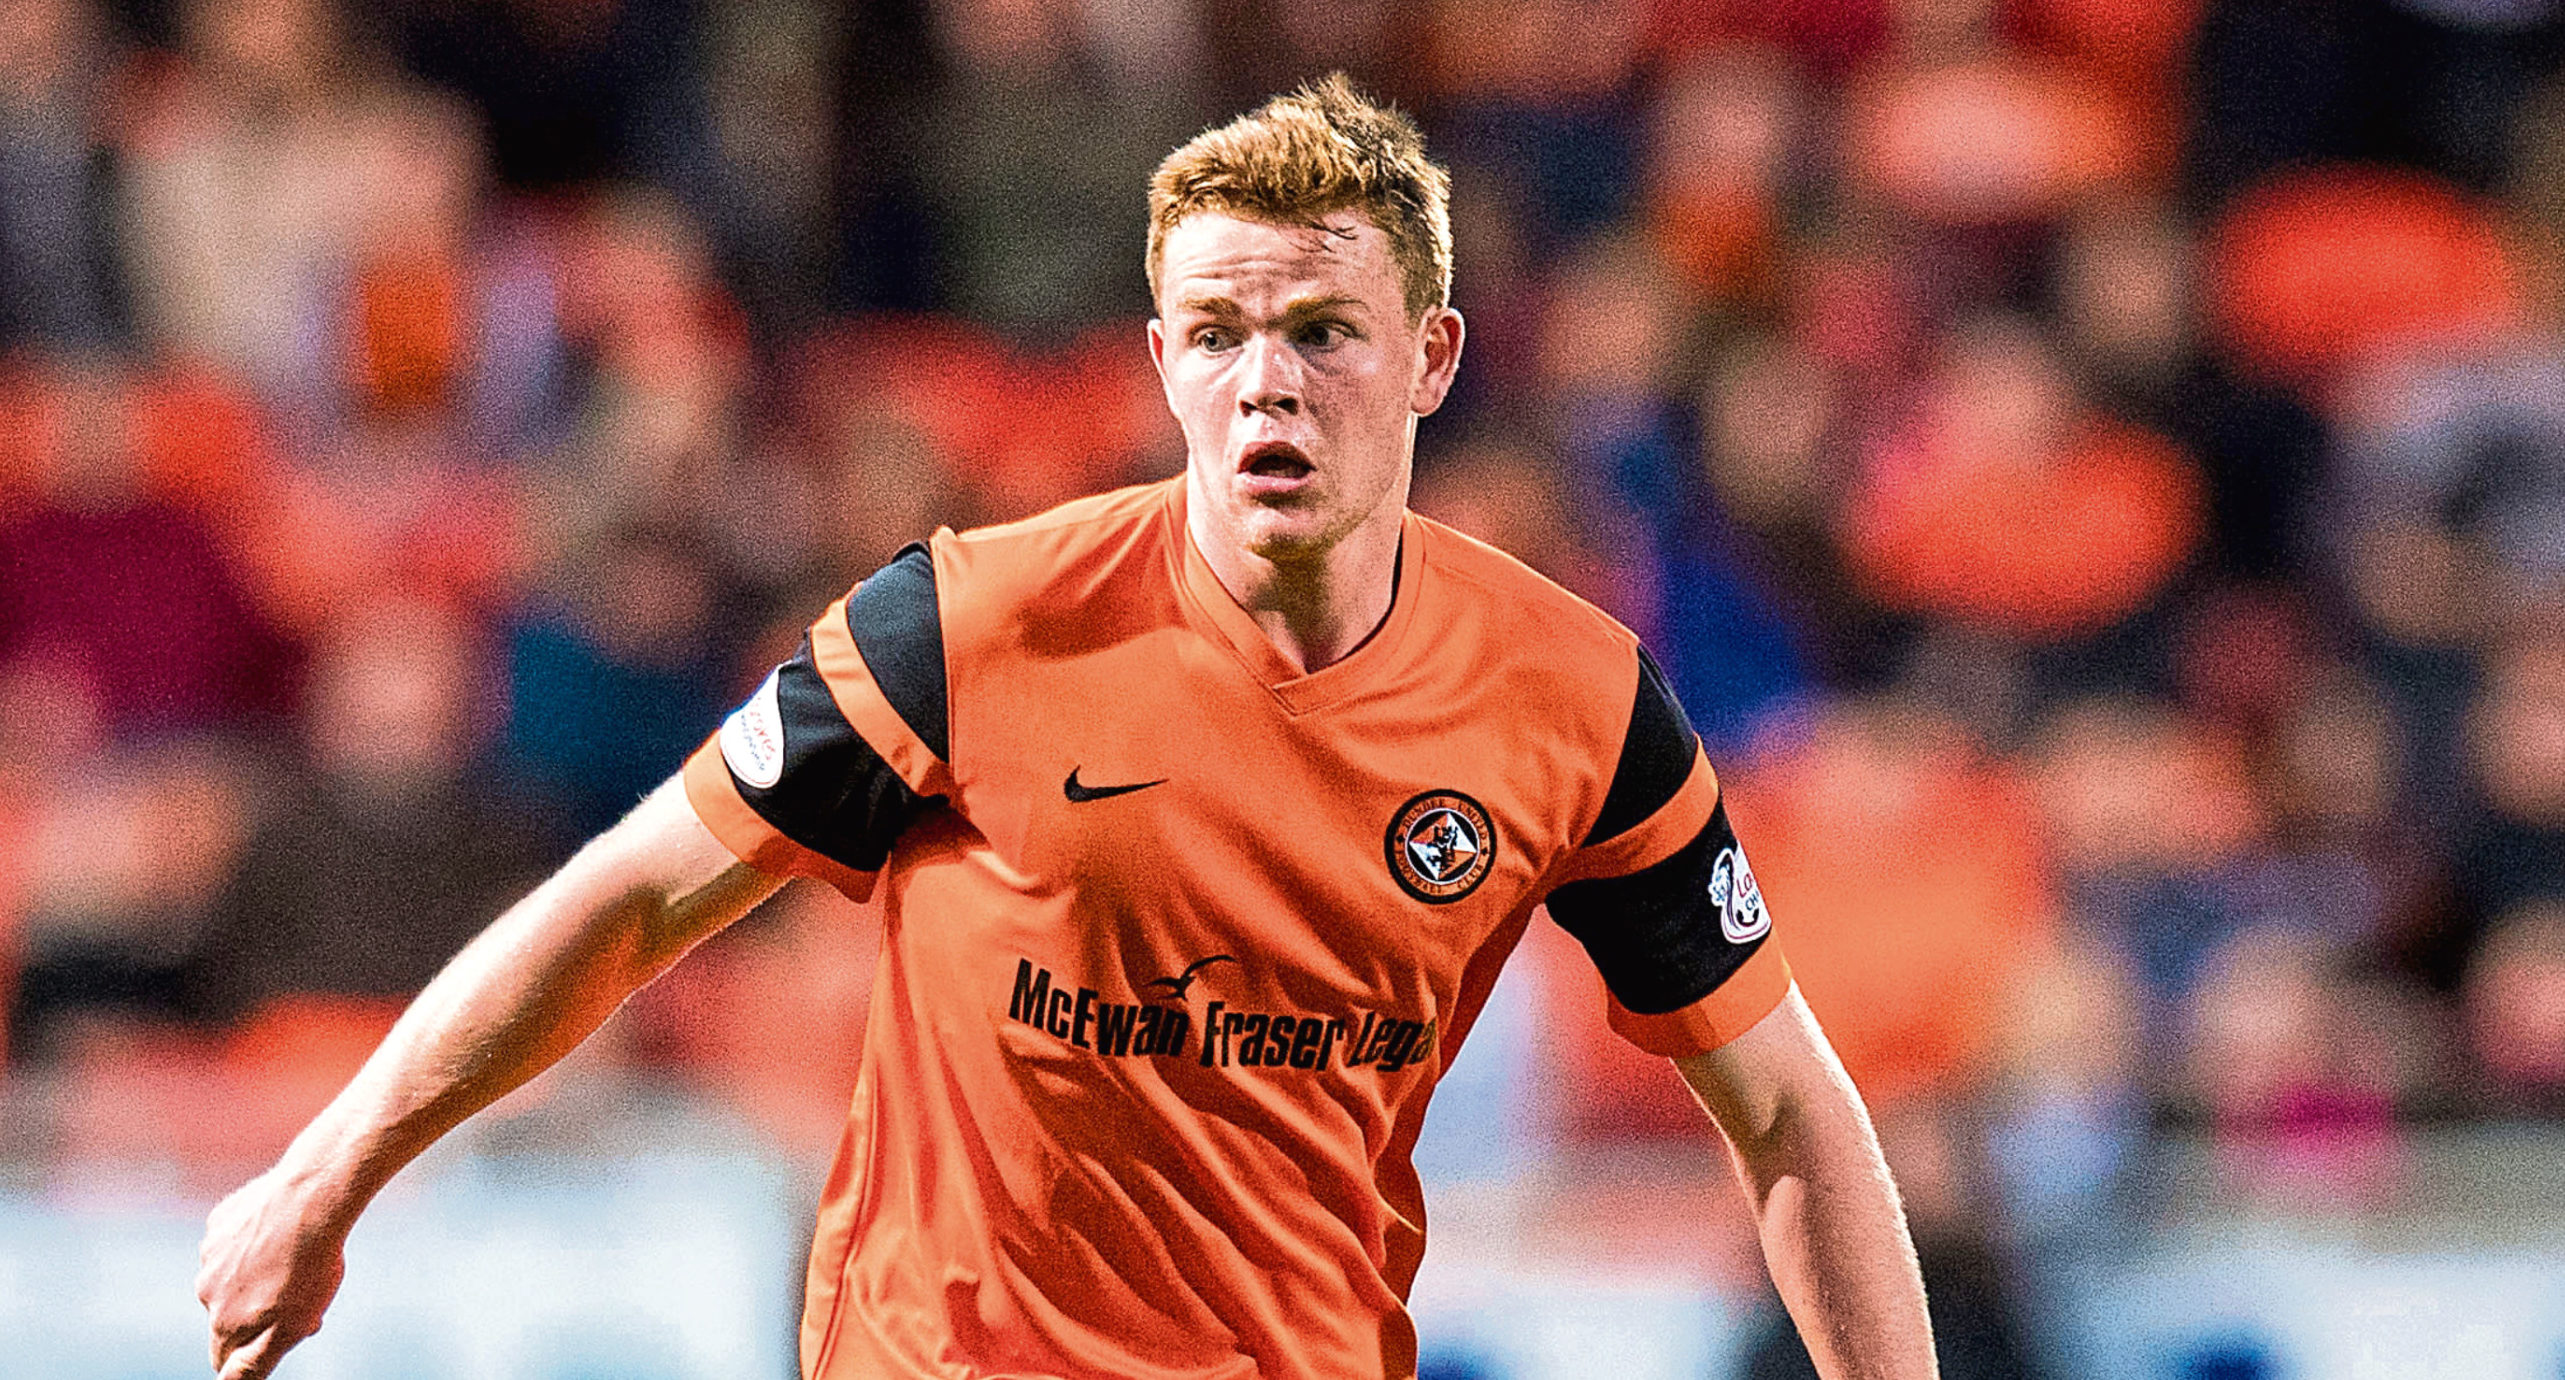 11/04/17 LADBROKES CHAMPIONSHIP  DUNDEE UNITED v DUNFERMLINE  TANNADICE - DUNDEE  Dundee United's Scott Allardice in action.